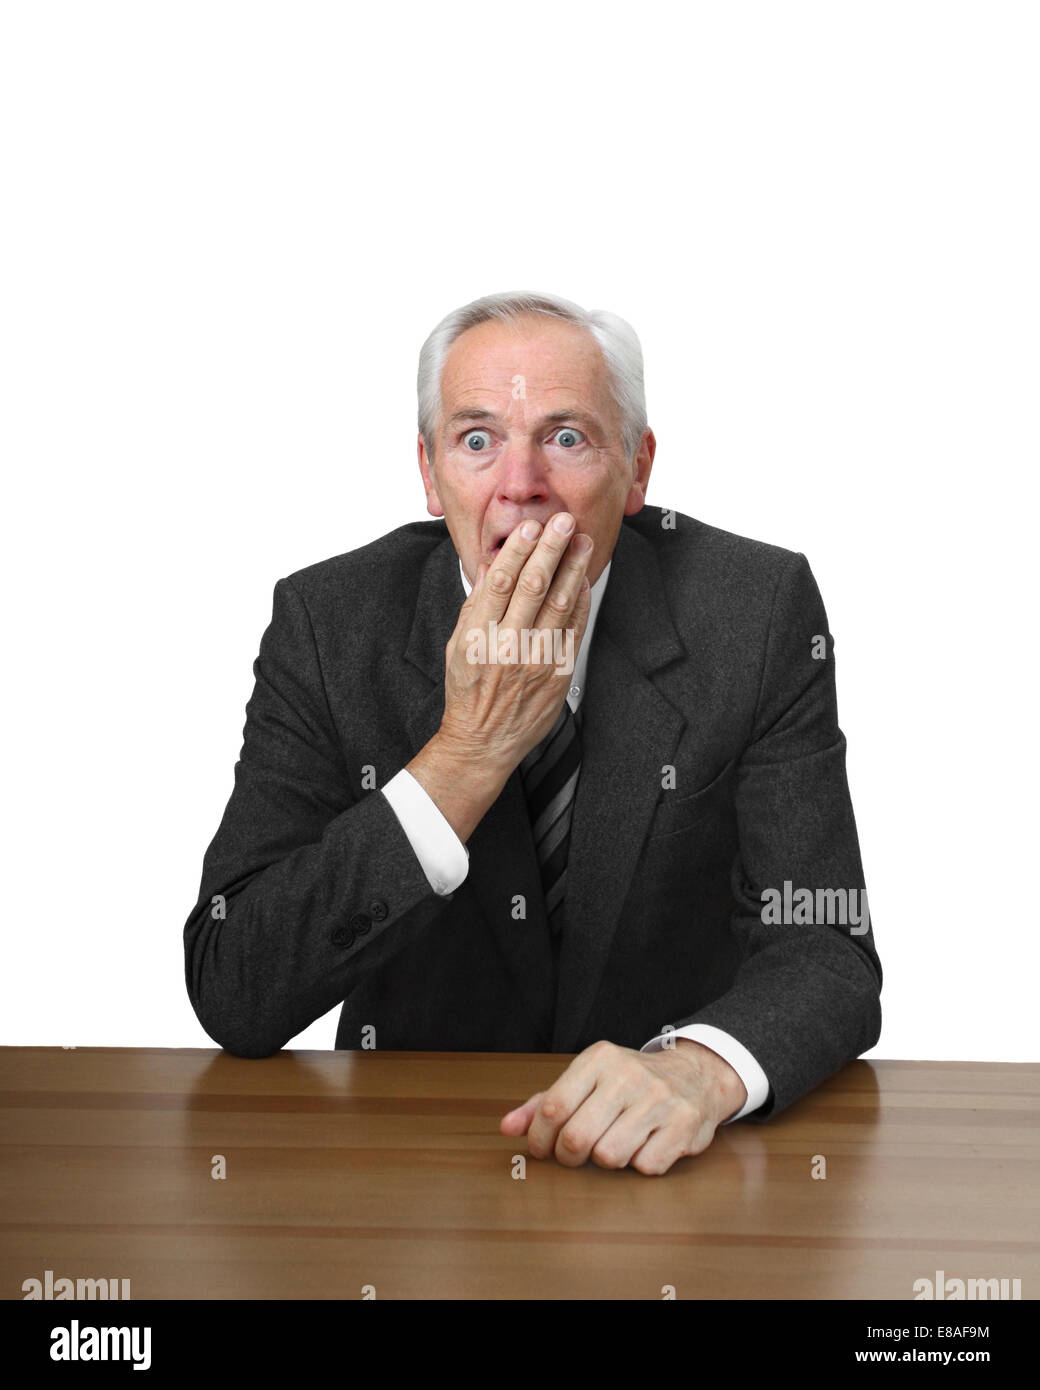 Shocked man sits at table covering her mouth by hand isolated on white background - Stock Image